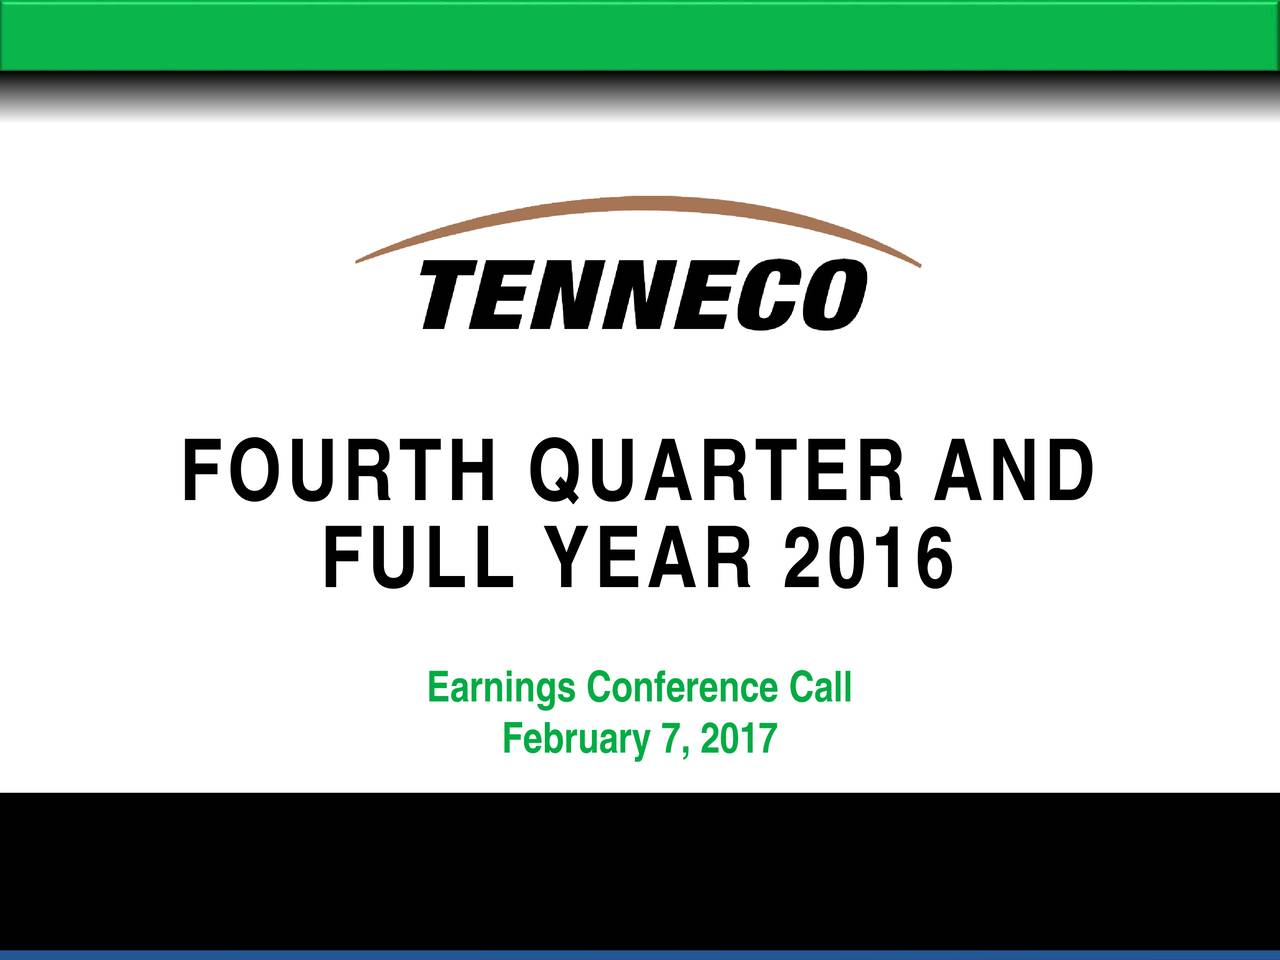 FULL YEAR 2016 Earnings Conference Call February 7, 2017